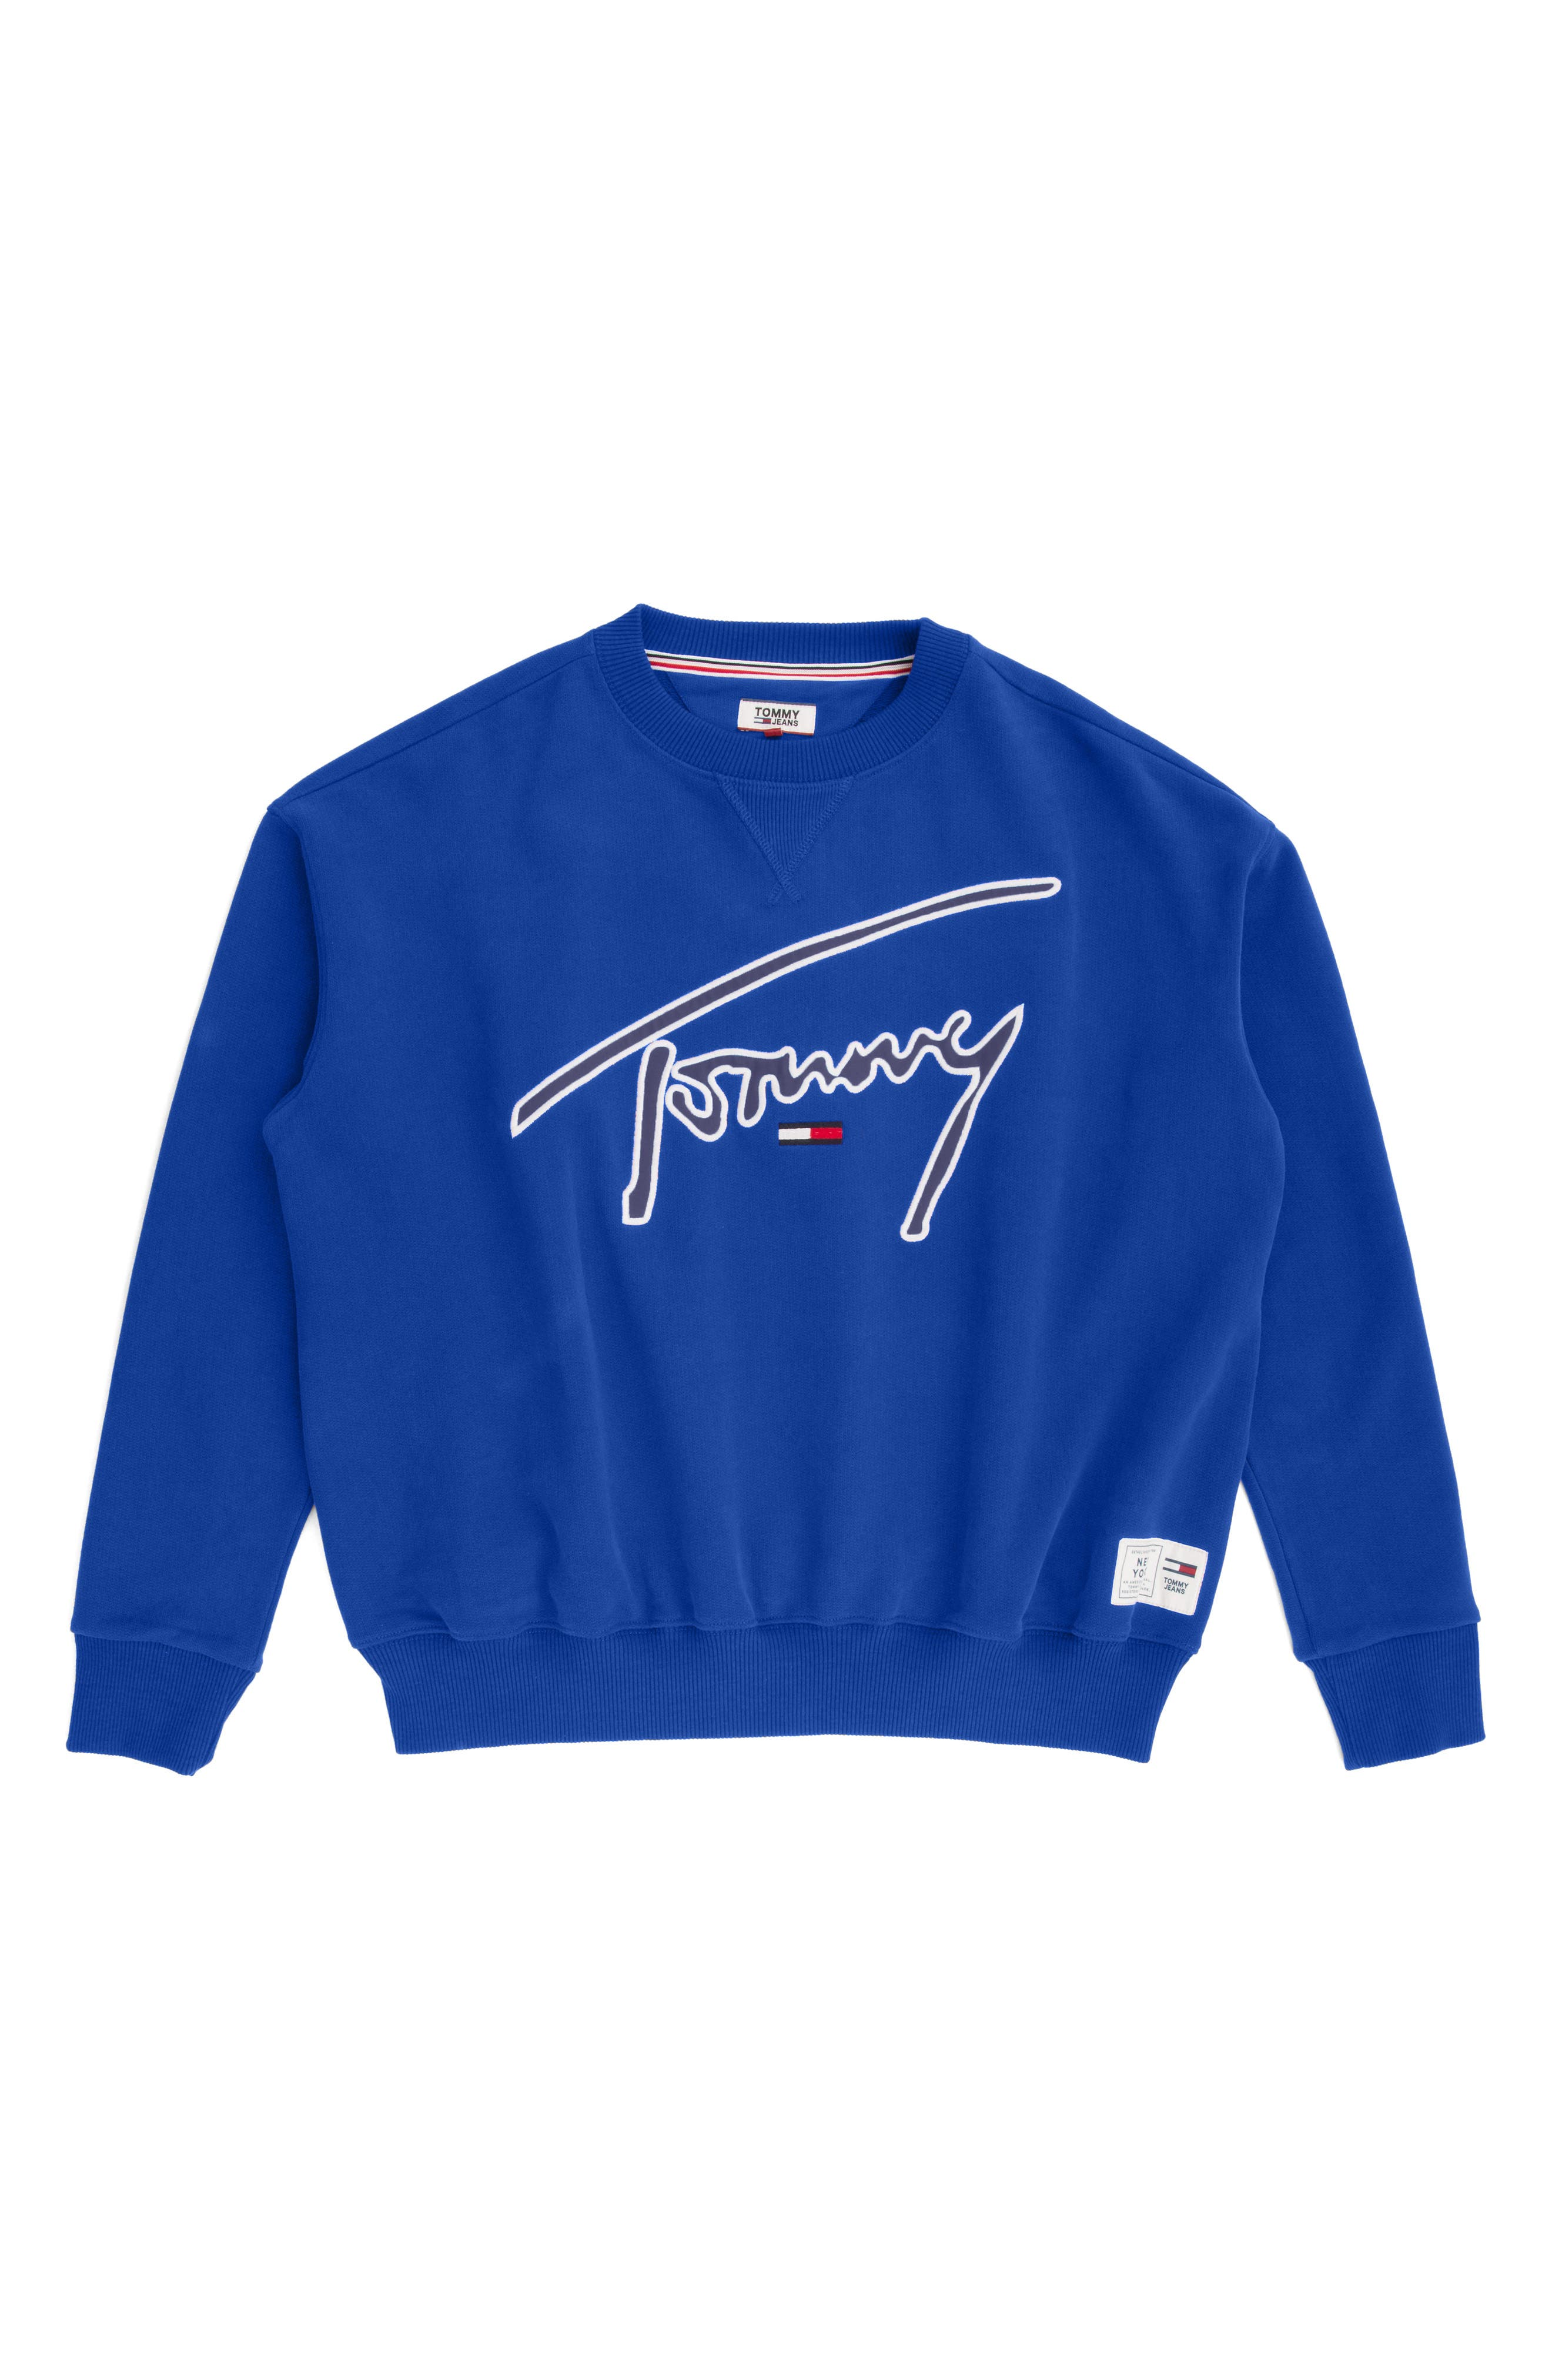 TOMMY JEANS,                             TJW Embroidered Logo Sweatshirt,                             Alternate thumbnail 4, color,                             419